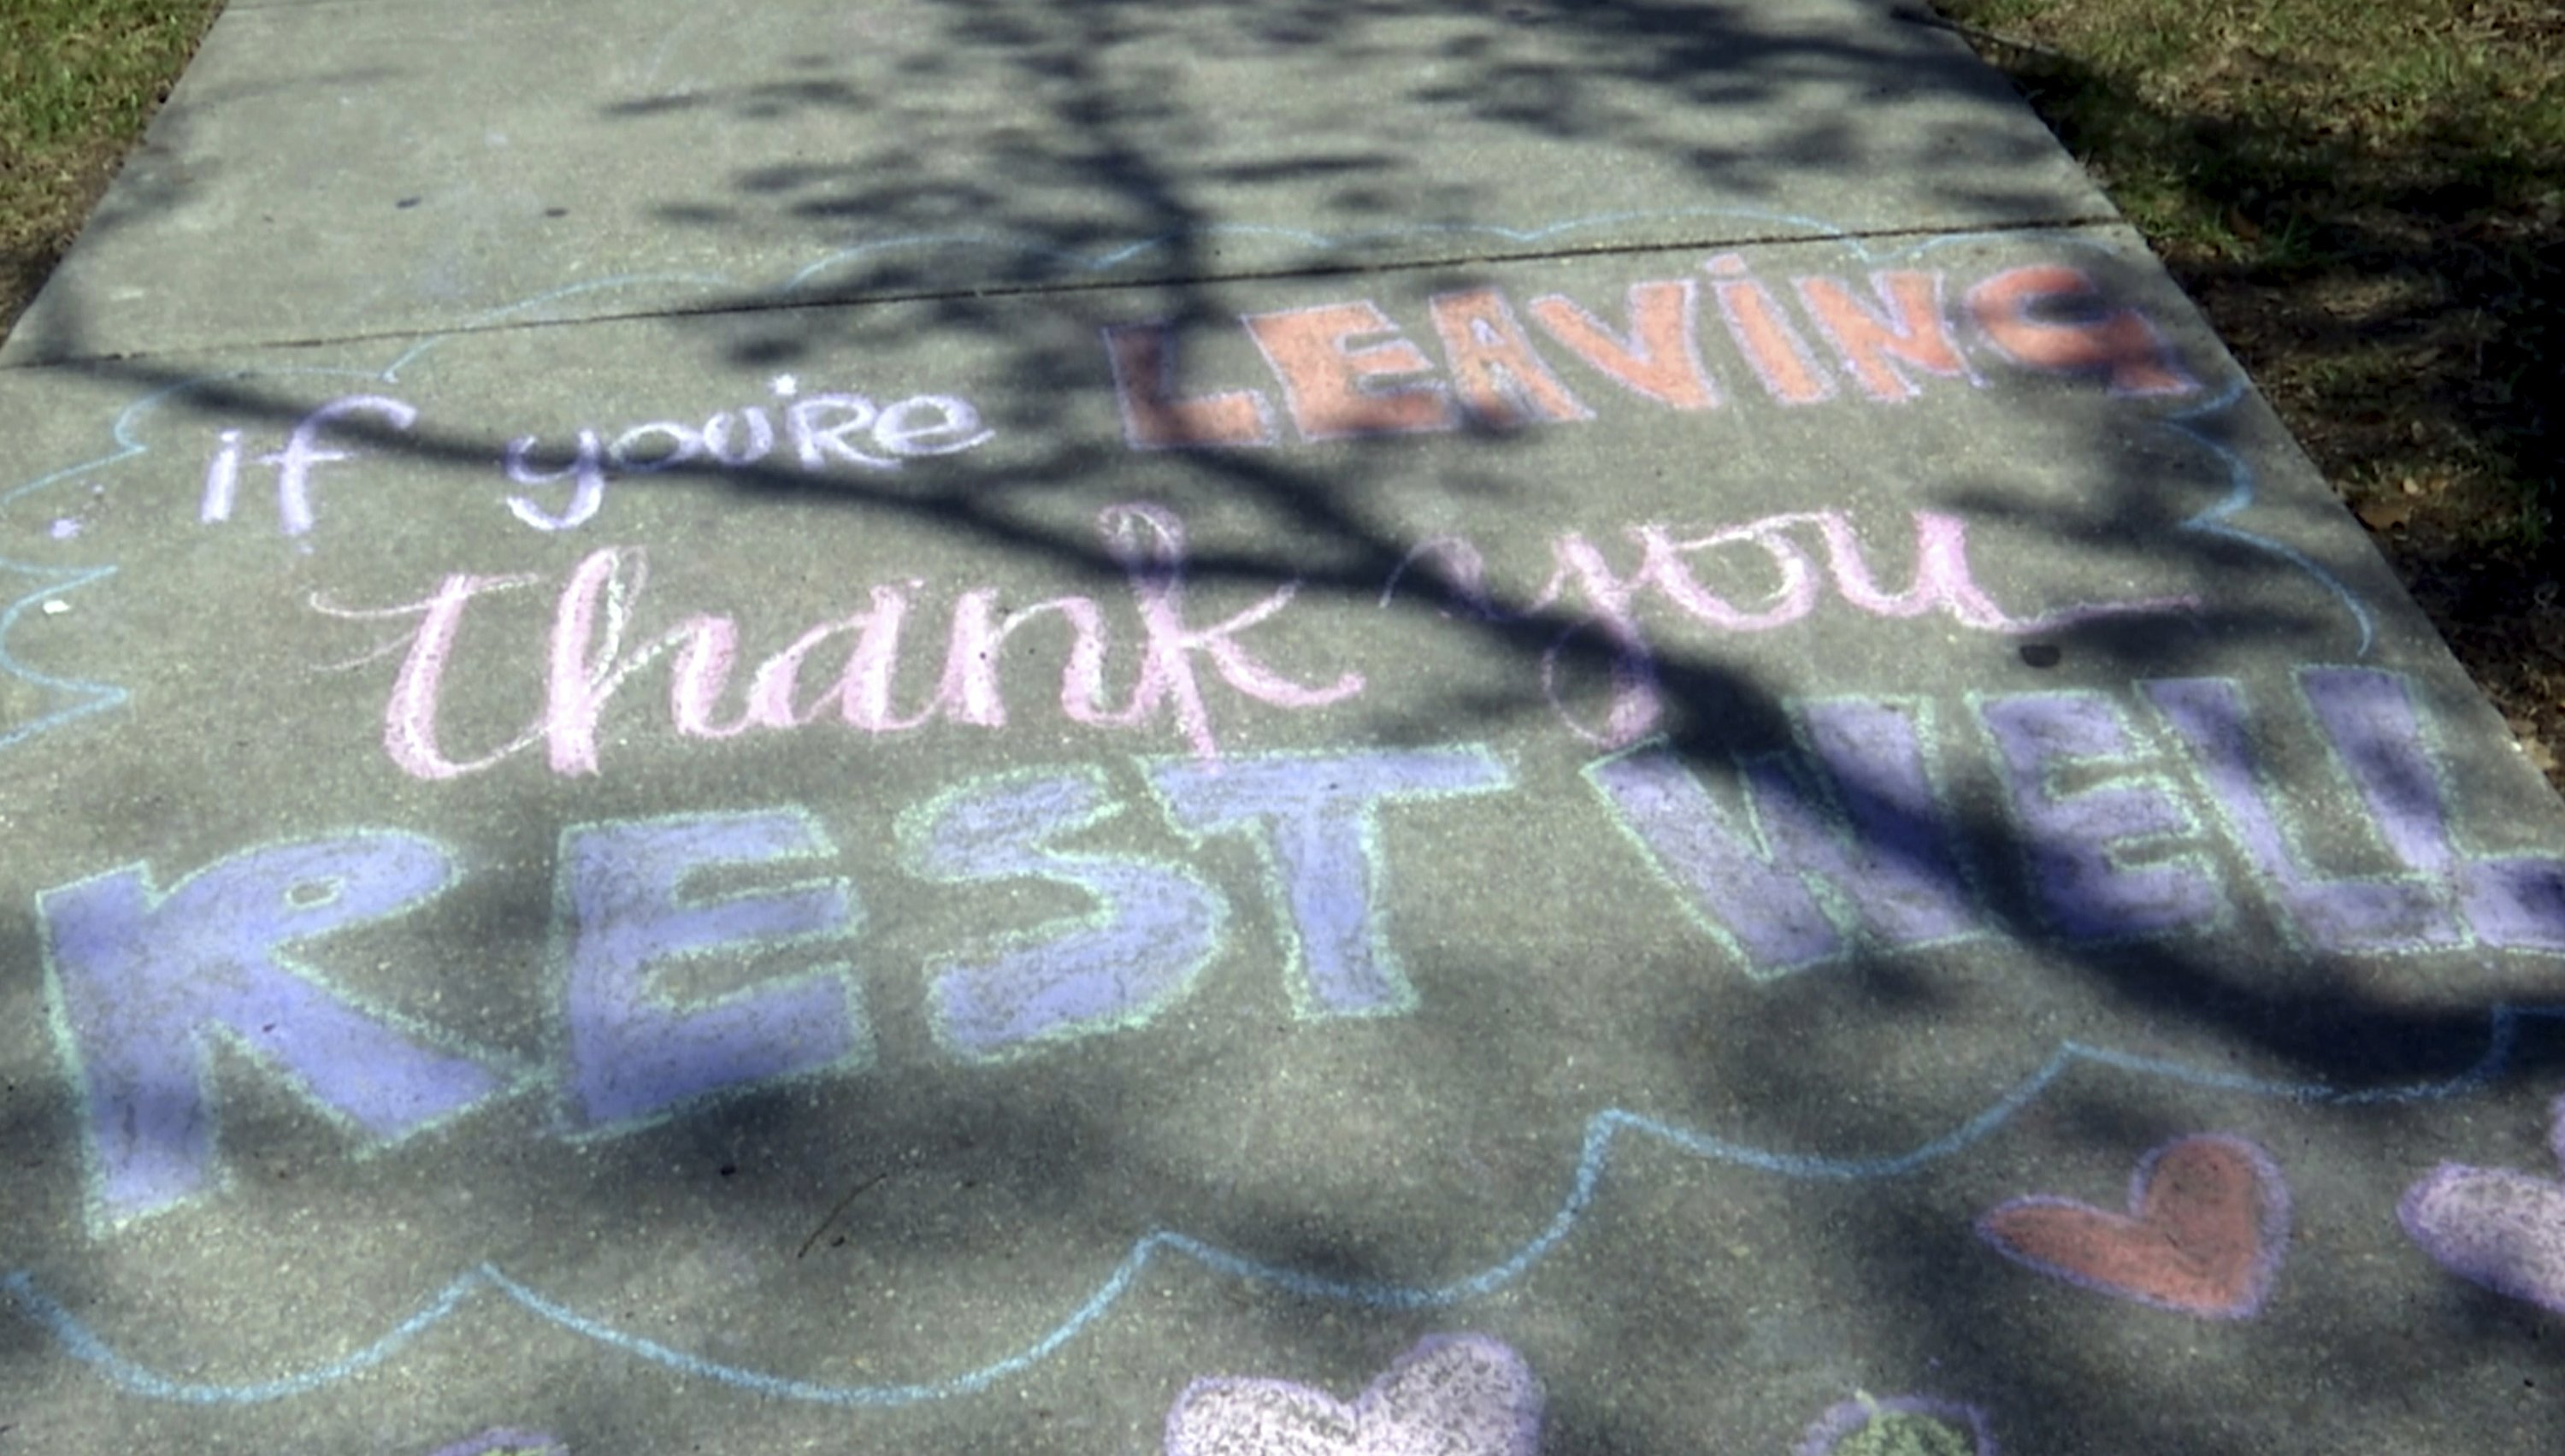 Sidewalk notes bring smiles to hospital staff during virus